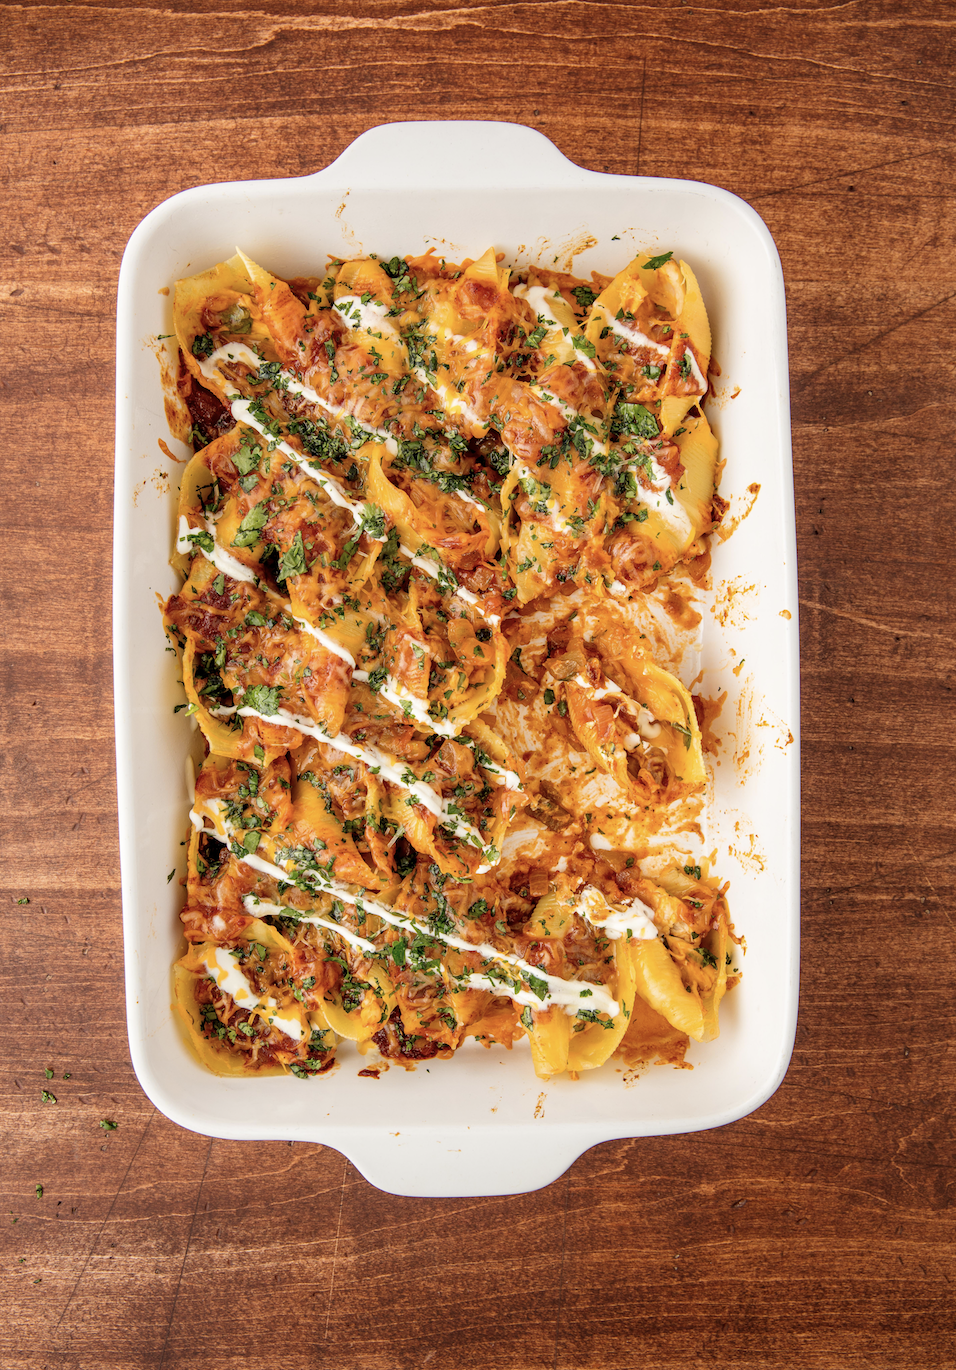 """<p>Stuff your favorite Mexican dish into jumbo shells and we promise you won't regret it.</p><p>Get the recipe from <a href=""""https://www.delish.com/cooking/recipe-ideas/recipes/a55259/enchilada-stuffed-shells-recipe/"""" rel=""""nofollow noopener"""" target=""""_blank"""" data-ylk=""""slk:Delish"""" class=""""link rapid-noclick-resp"""">Delish</a>.</p>"""